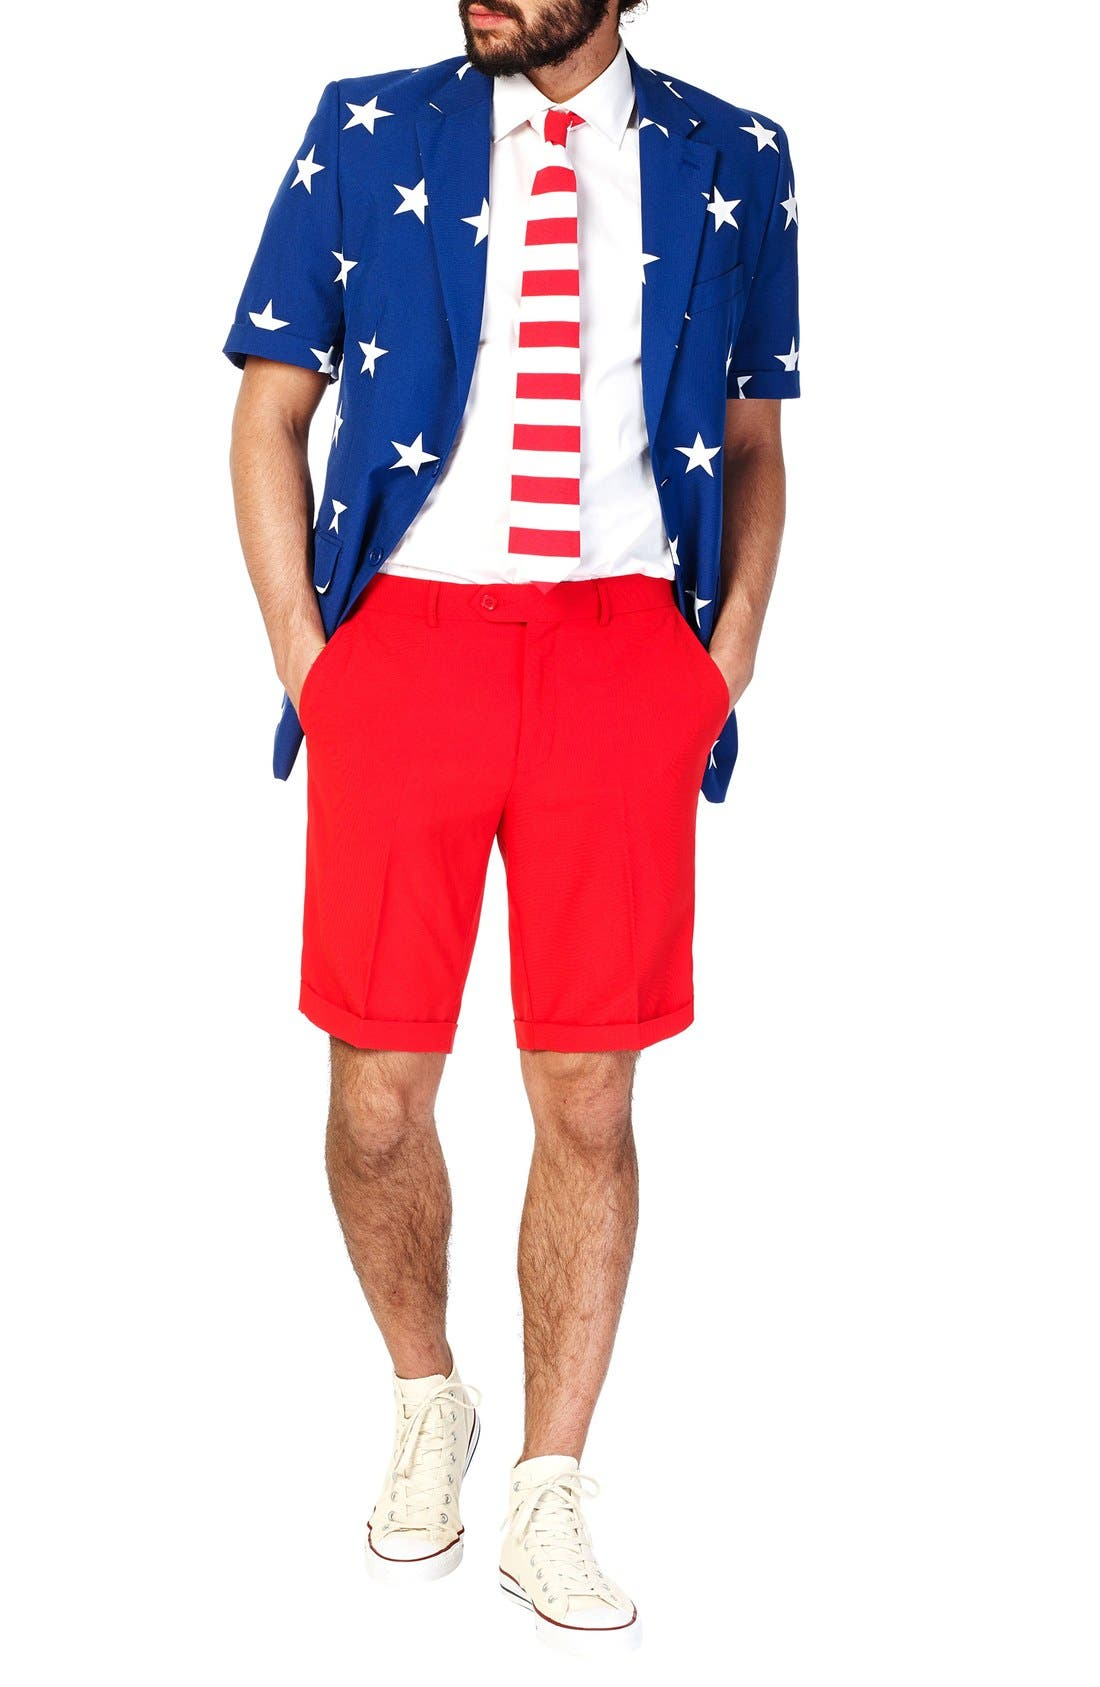 'Summer Stars & Stripes' Trim Fit Short Suit with Tie,                         Main,                         color, Blue/ Red/ White